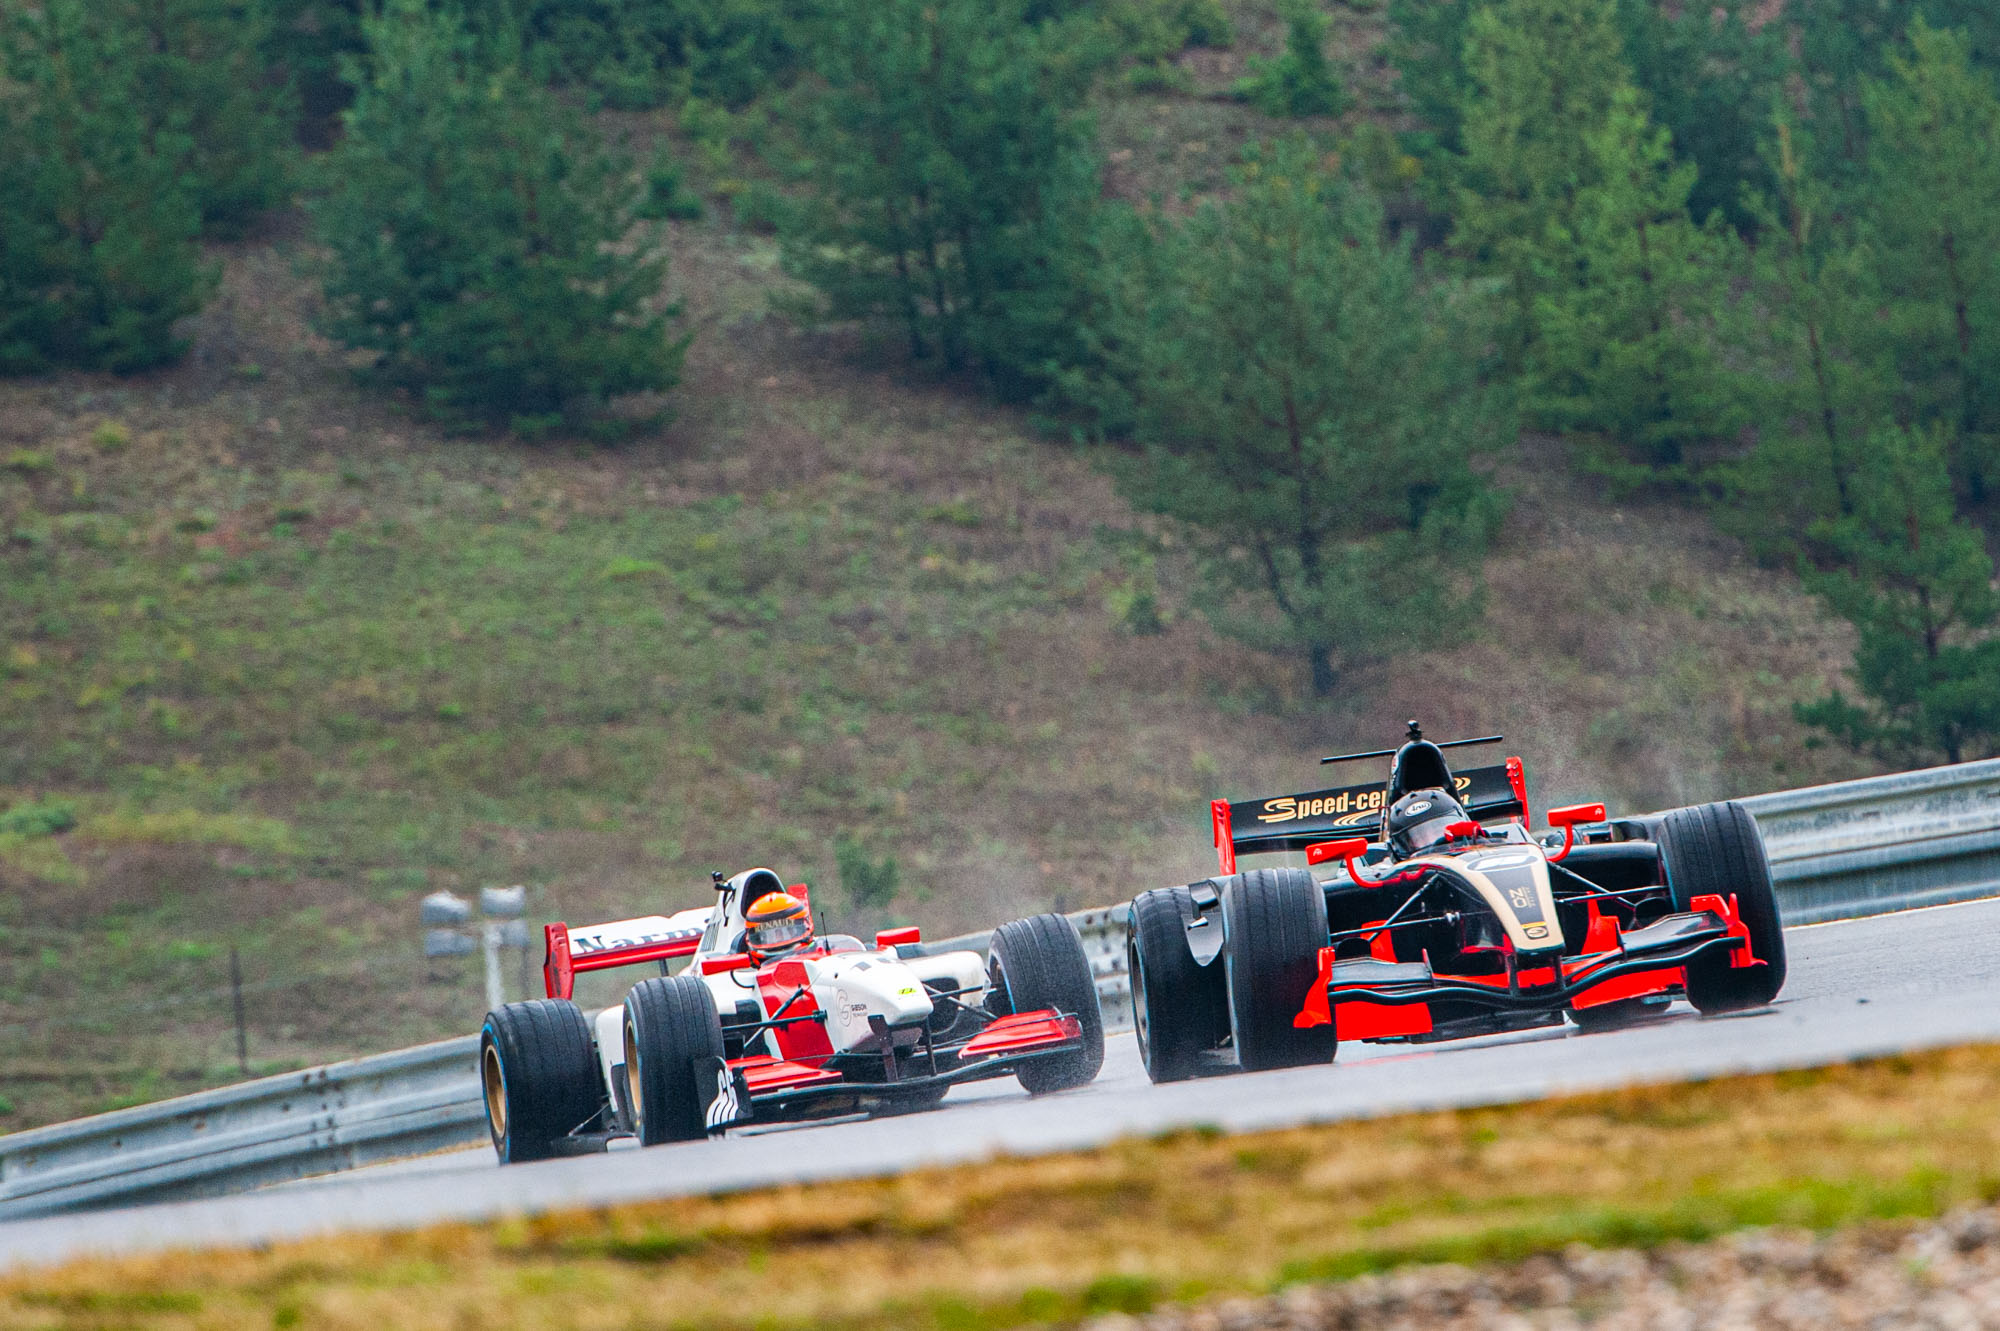 Two BOSS GP cars on wet weather tyres on a slippery track in Brno 2019